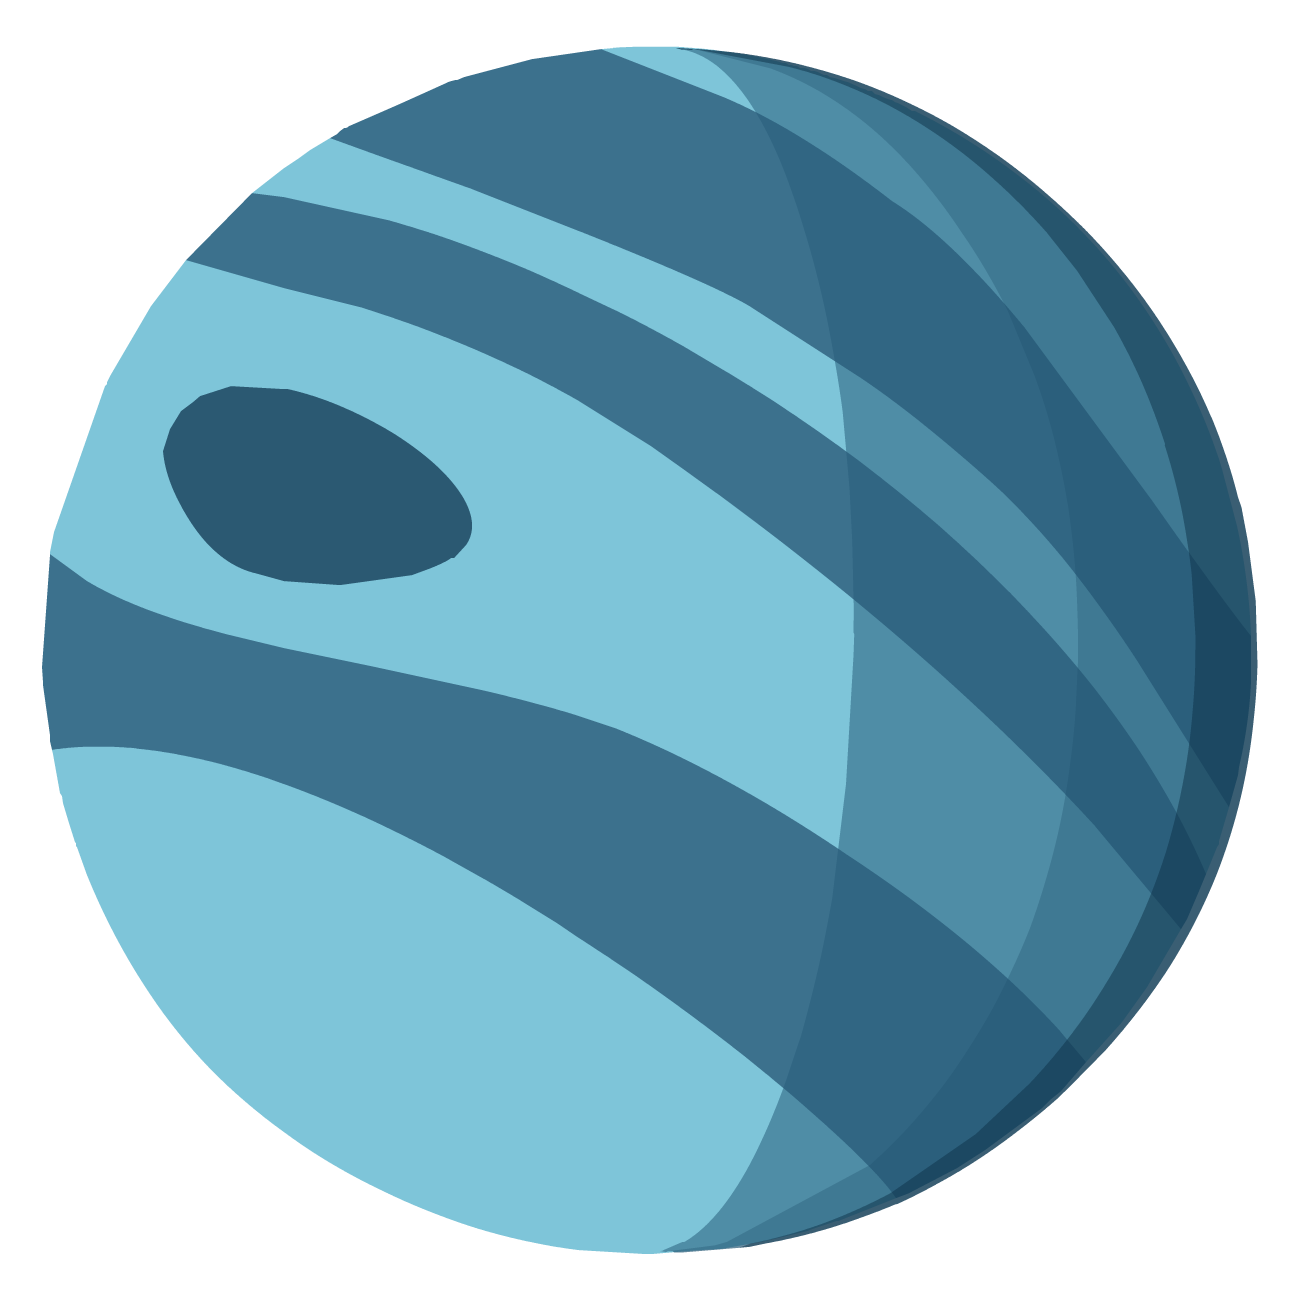 Cartoon planet png. Image